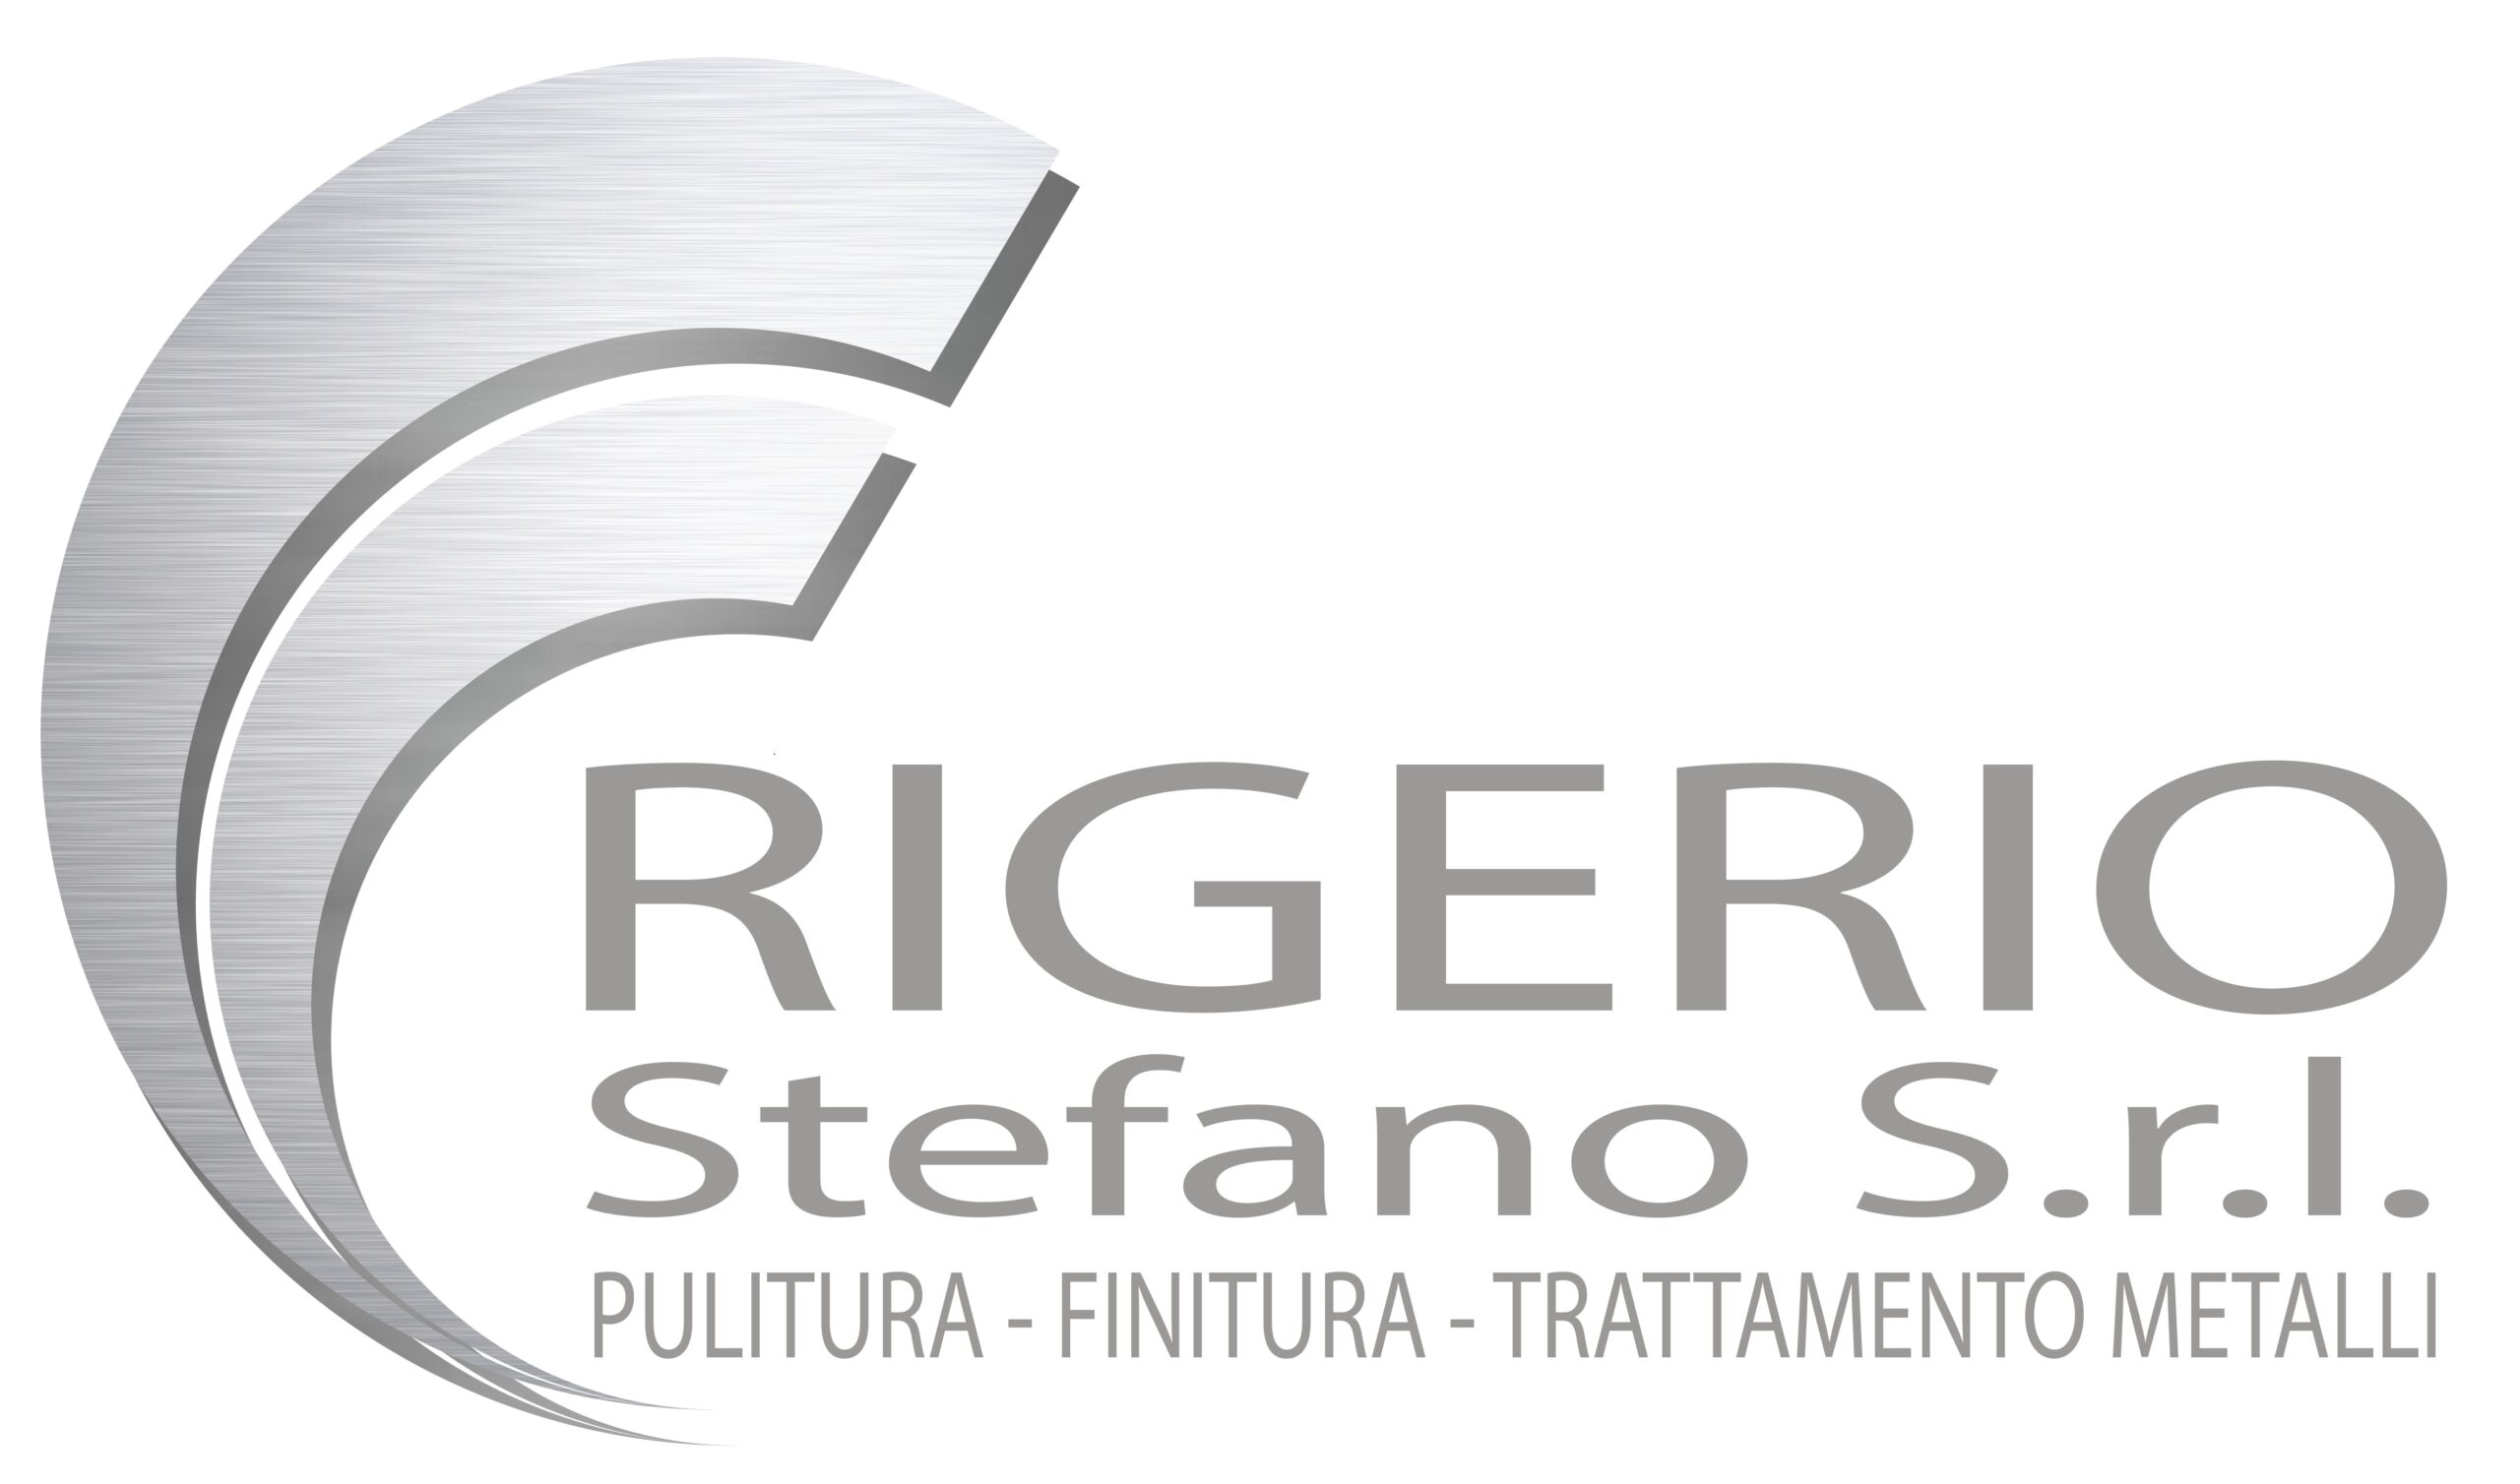 "Dal 2009 , Logo Design, Web Design, gestione aggiornamento sito web e social media management, graphics & video editing, content wrtiting, assistenza hardware & software, networking administration di Frigerio Stefano Srl, Dal 2009 , Logo Design, Web Design, gestione aggiornamento sito web e social media management, graphics & video editing, content wrtiting, assistenza hardware & software, networking administration di Frigerio Stefano Srl, Pulitura - Finitura - Trattamento Metalli www.puliturametalli.com www.pigikappa.com PiGiKappa.com Your Digital Partner ""We Share Everything"" #share #pgk #pigikappa #pigikappa.com #webmaintenance #socialmedia #management #social #puliturametalli #frigerio #e-commerce #logo #logodesign Music: http://www.bensound.com Graphics & Music & Video Editing: PiGiKappa.com Or.Music: Bensound CC0 Or.Video: Pixabay CC0"